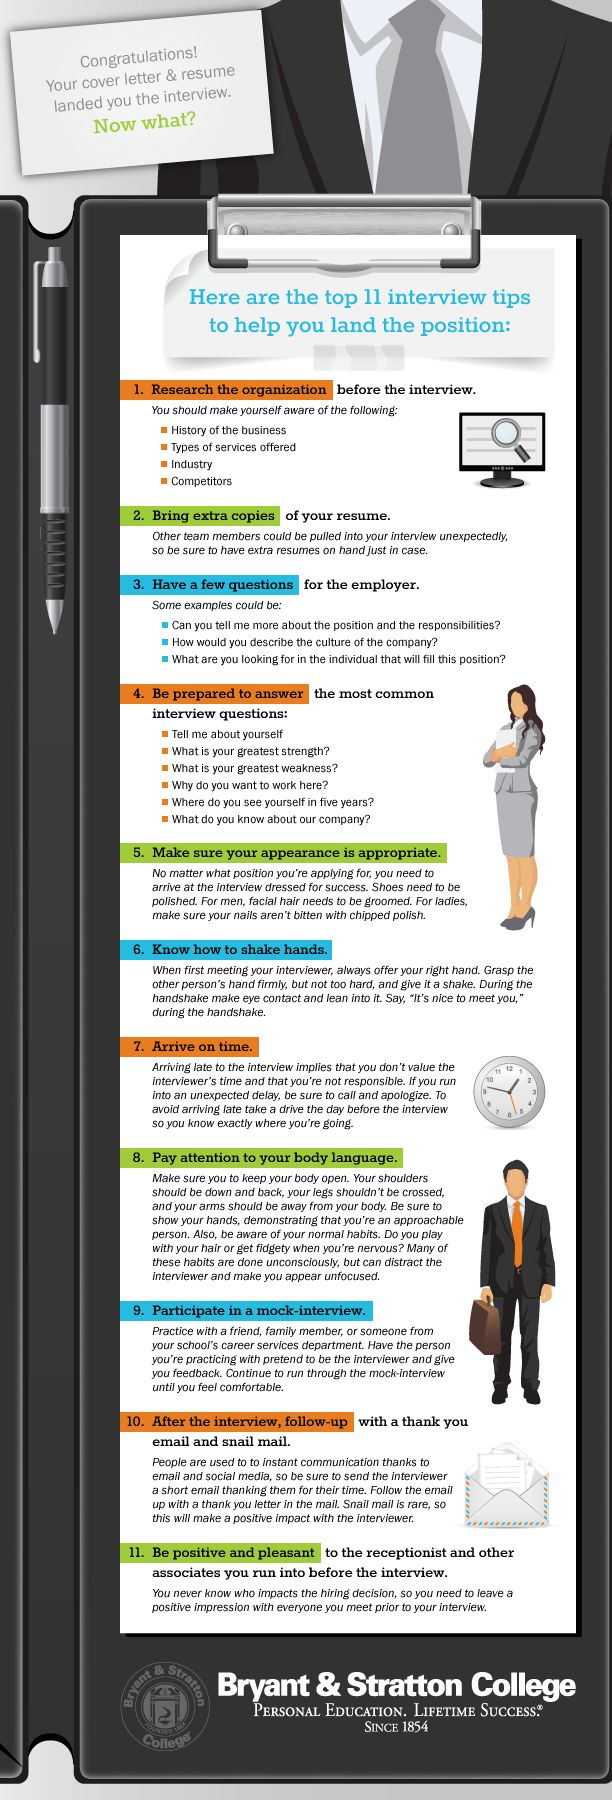 best images about interview tips interview top 11 interview tips infographic interview careers jobs interviewtips